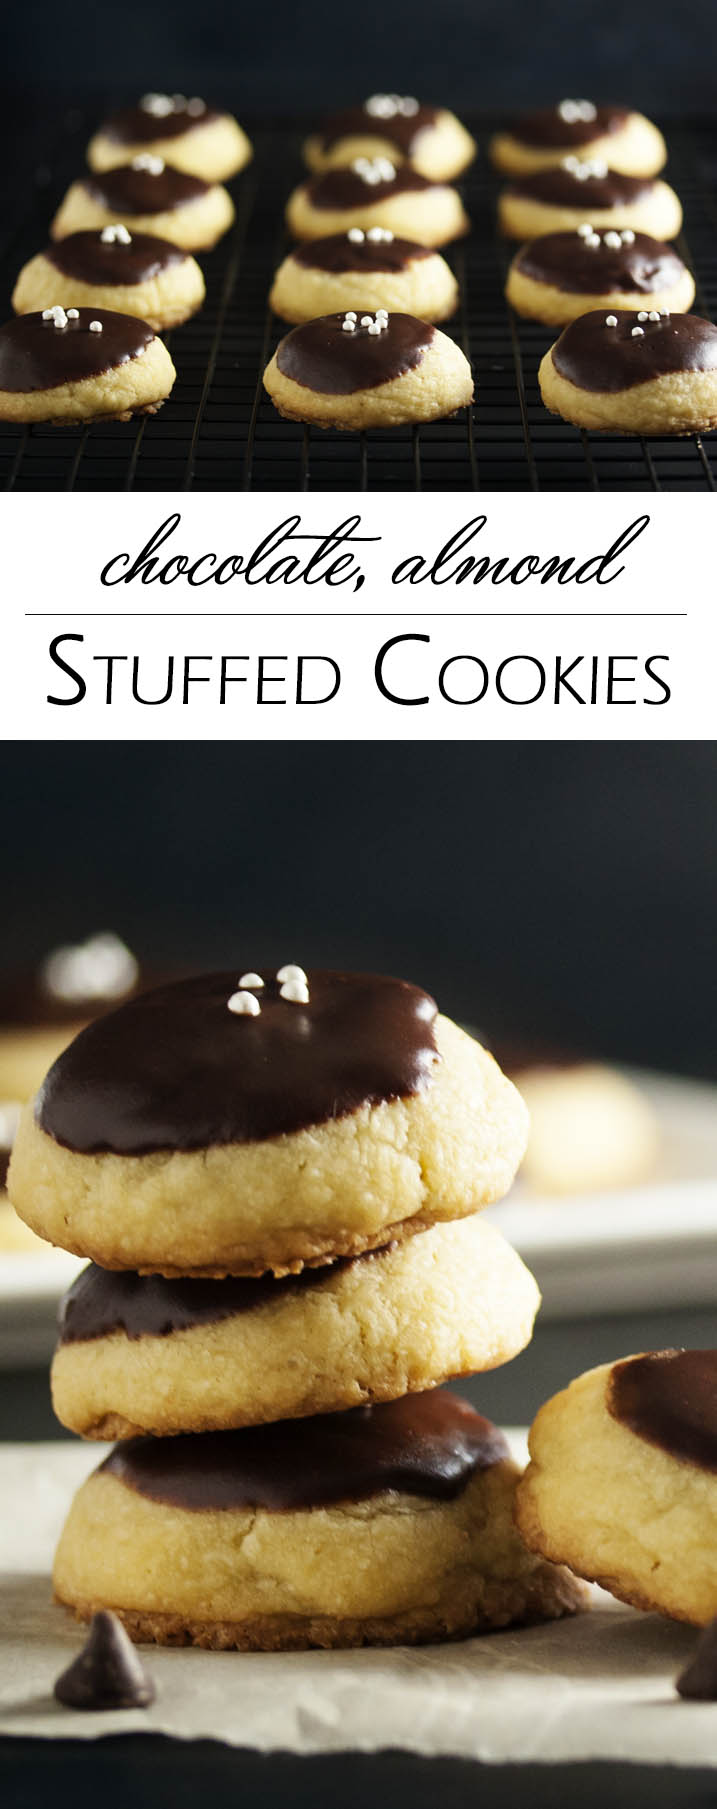 Chocolate Almond Stuffed Cookies - These chocolate covered cookies have a tender butter cookie outside and are filled with almonds and more chocolate! Just the thing to bring to a cookie exchange or to add to a cookie platter. | justalittlebitofbacon.com